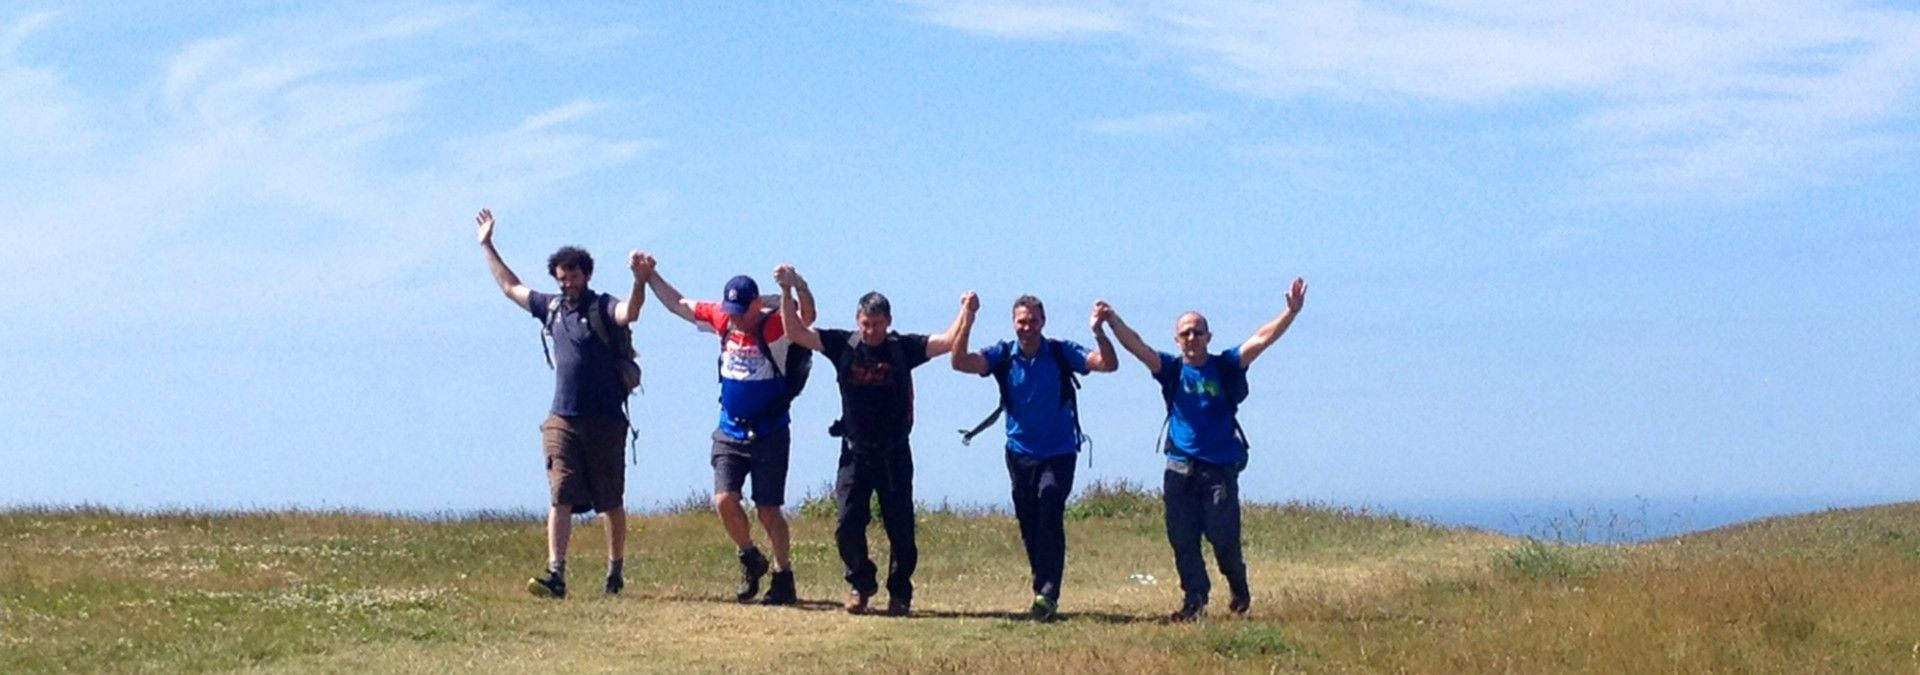 Fundraising_trek_champions_South_Downs_100km.jpg